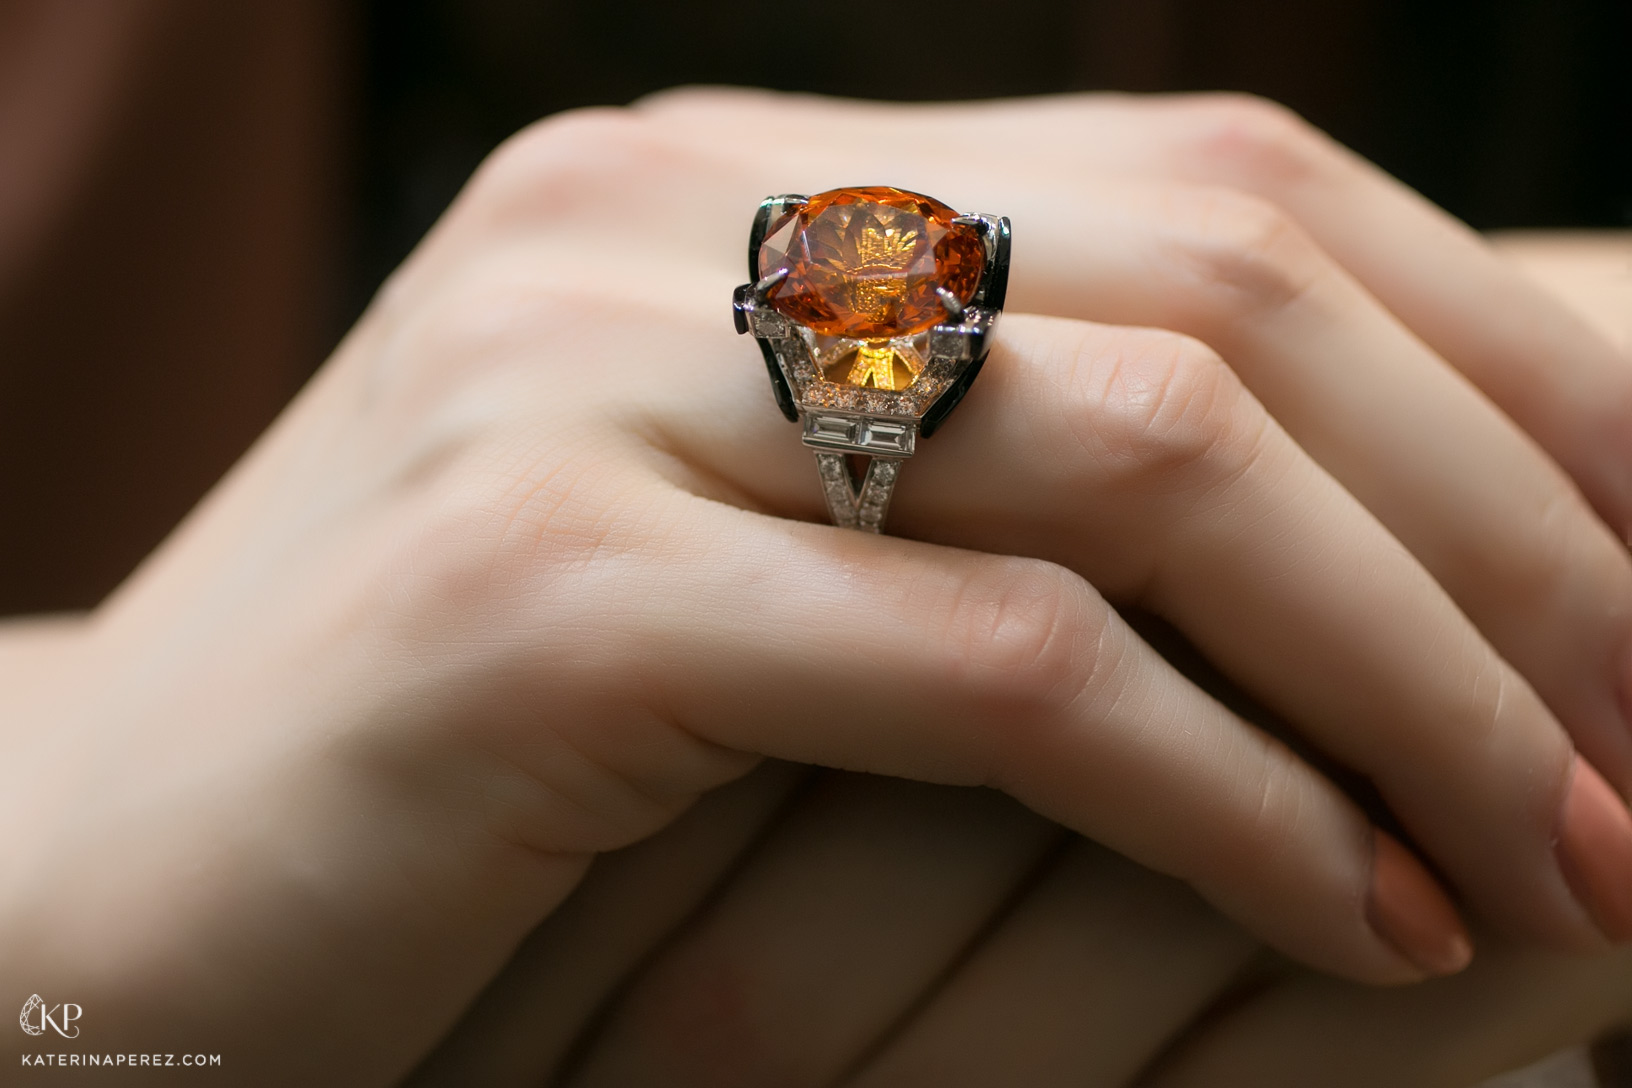 Carlo Barberis ring with 17.29ct mandarin garnet, onyx and diamonds